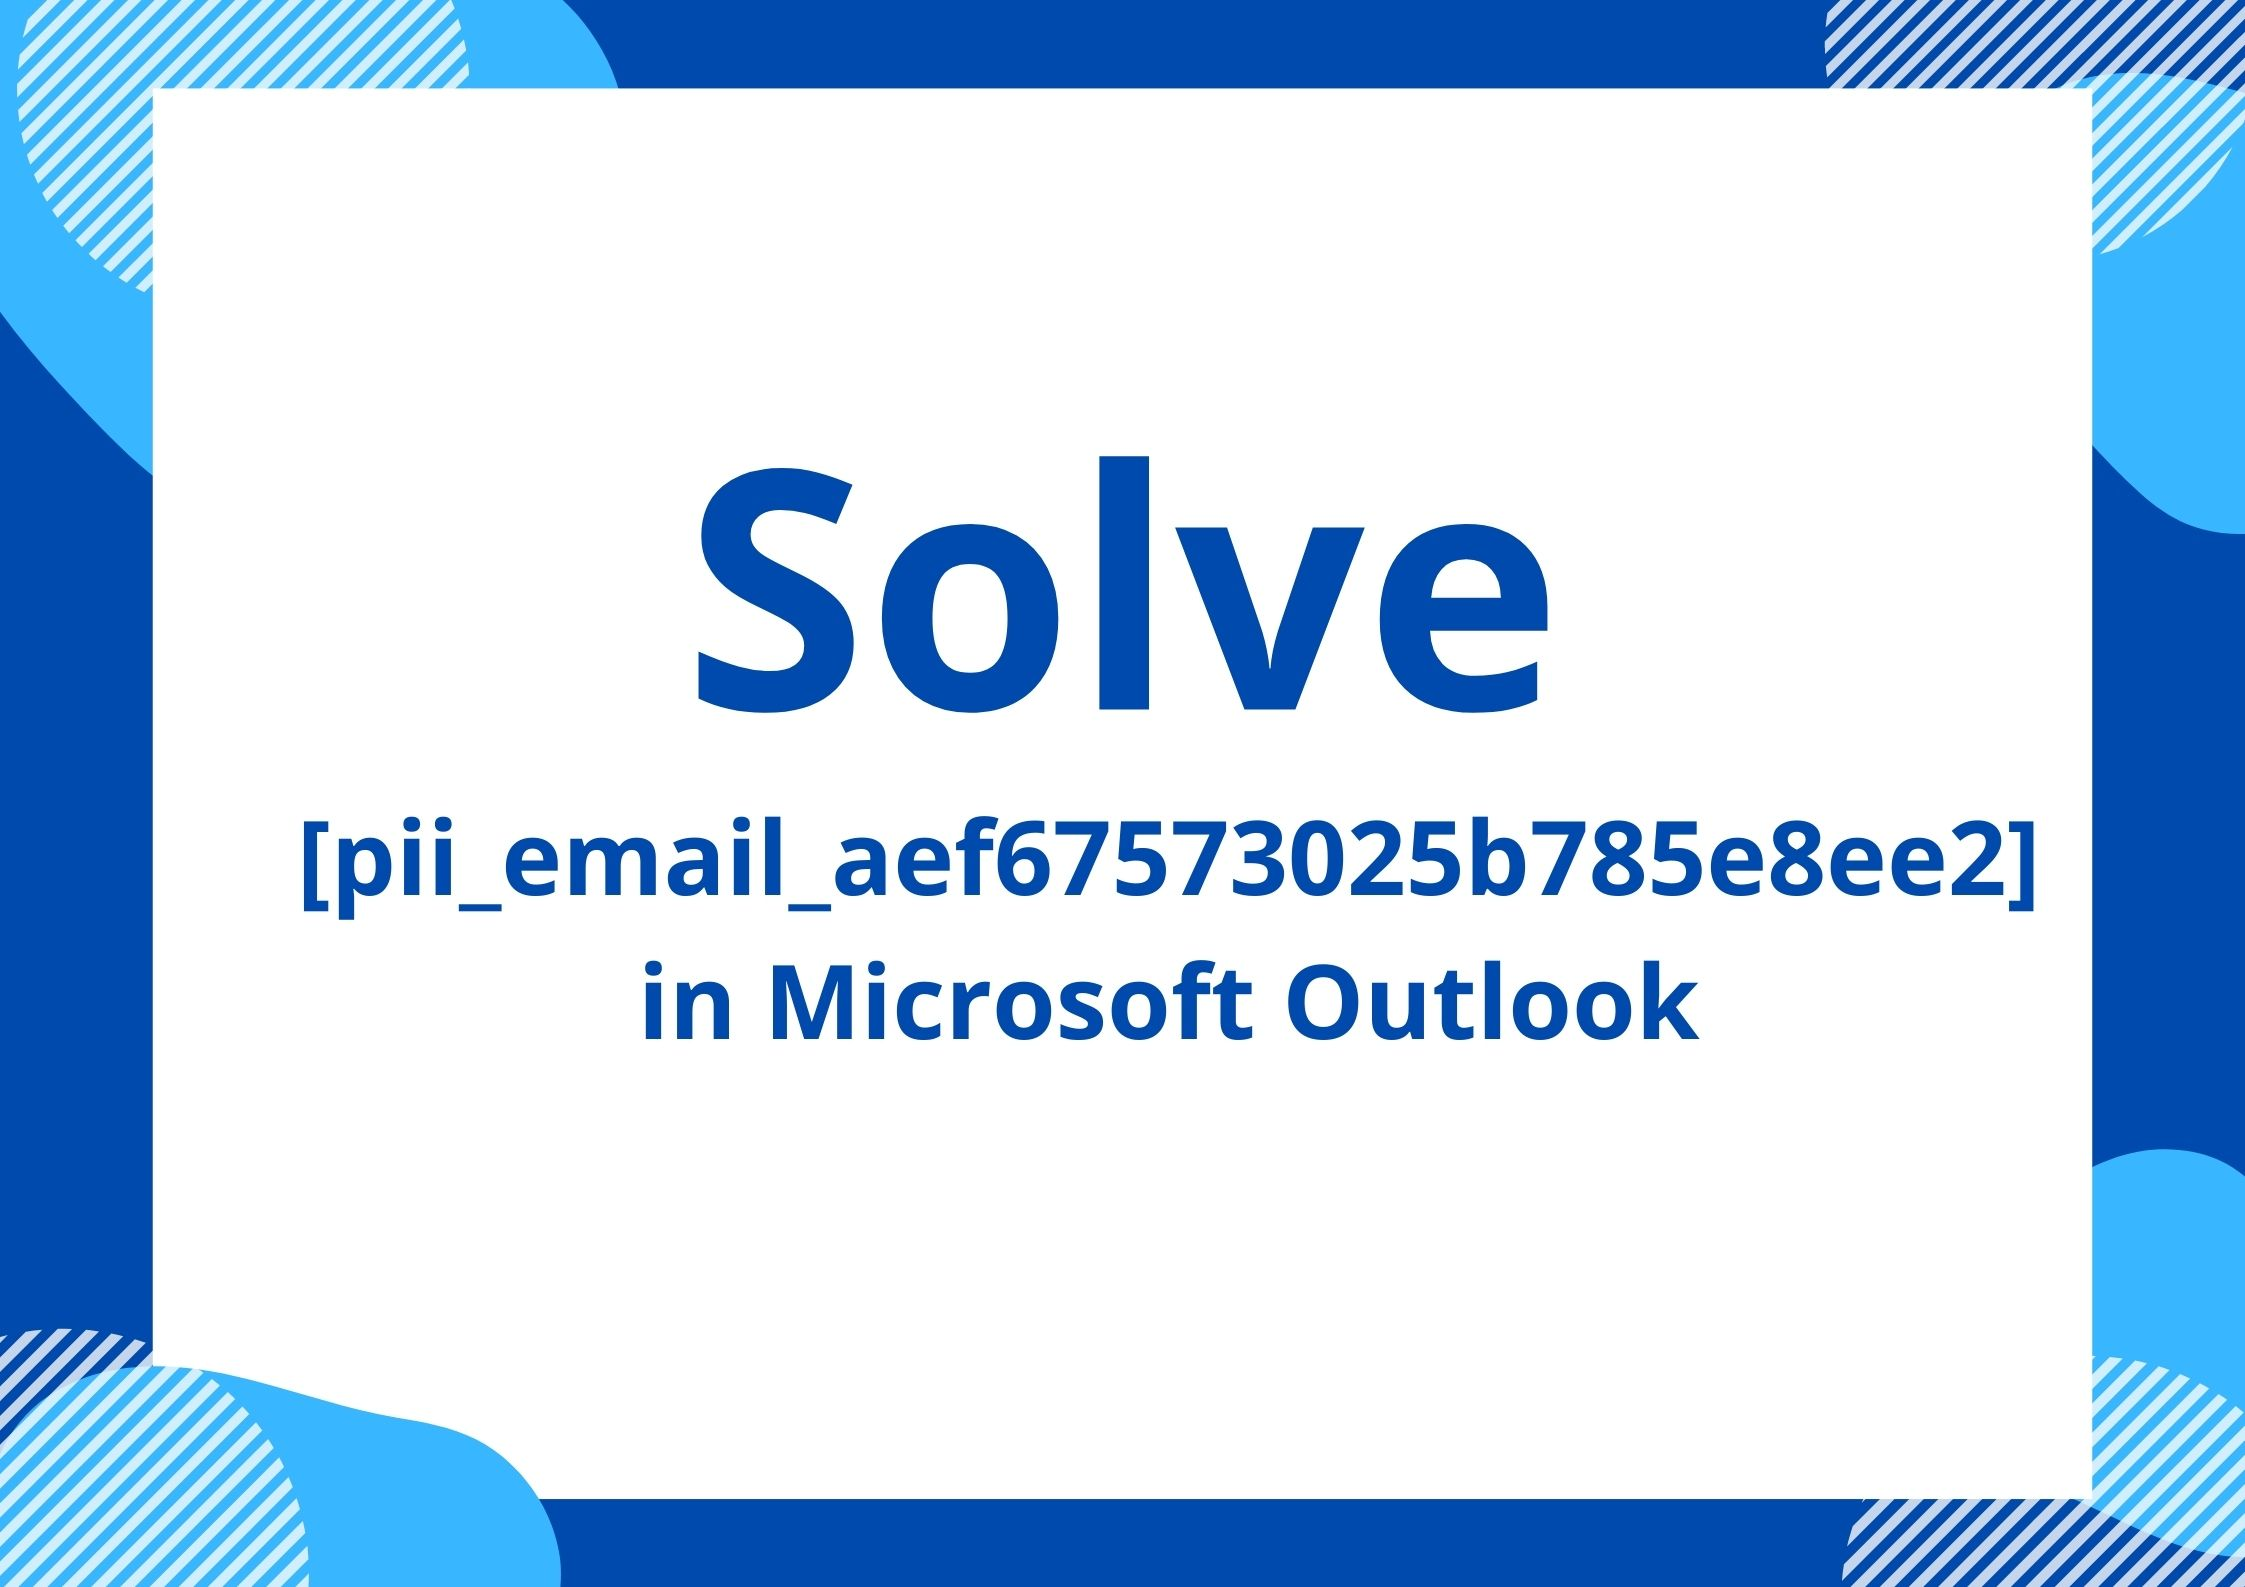 Solve [pii_email_aef67573025b785e8ee2] In Microsoft Outlook